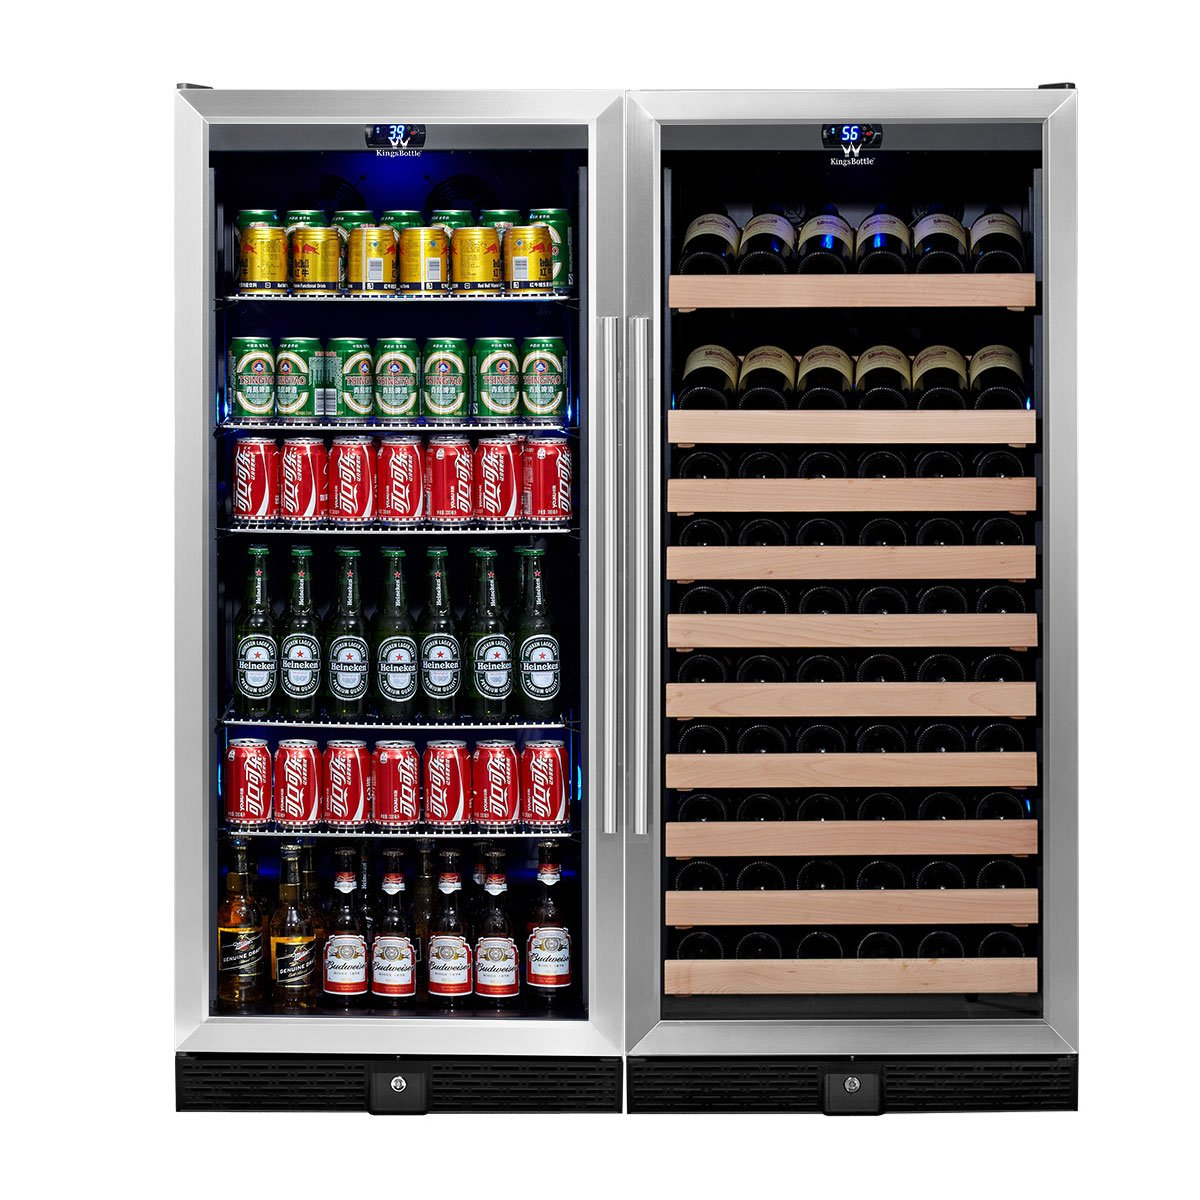 KingsBottle 2-Zone Wine and Beverage Combo Refrigerator, Holds 300 Cans and 98 Bottles, Stainless Steel with Glass Door